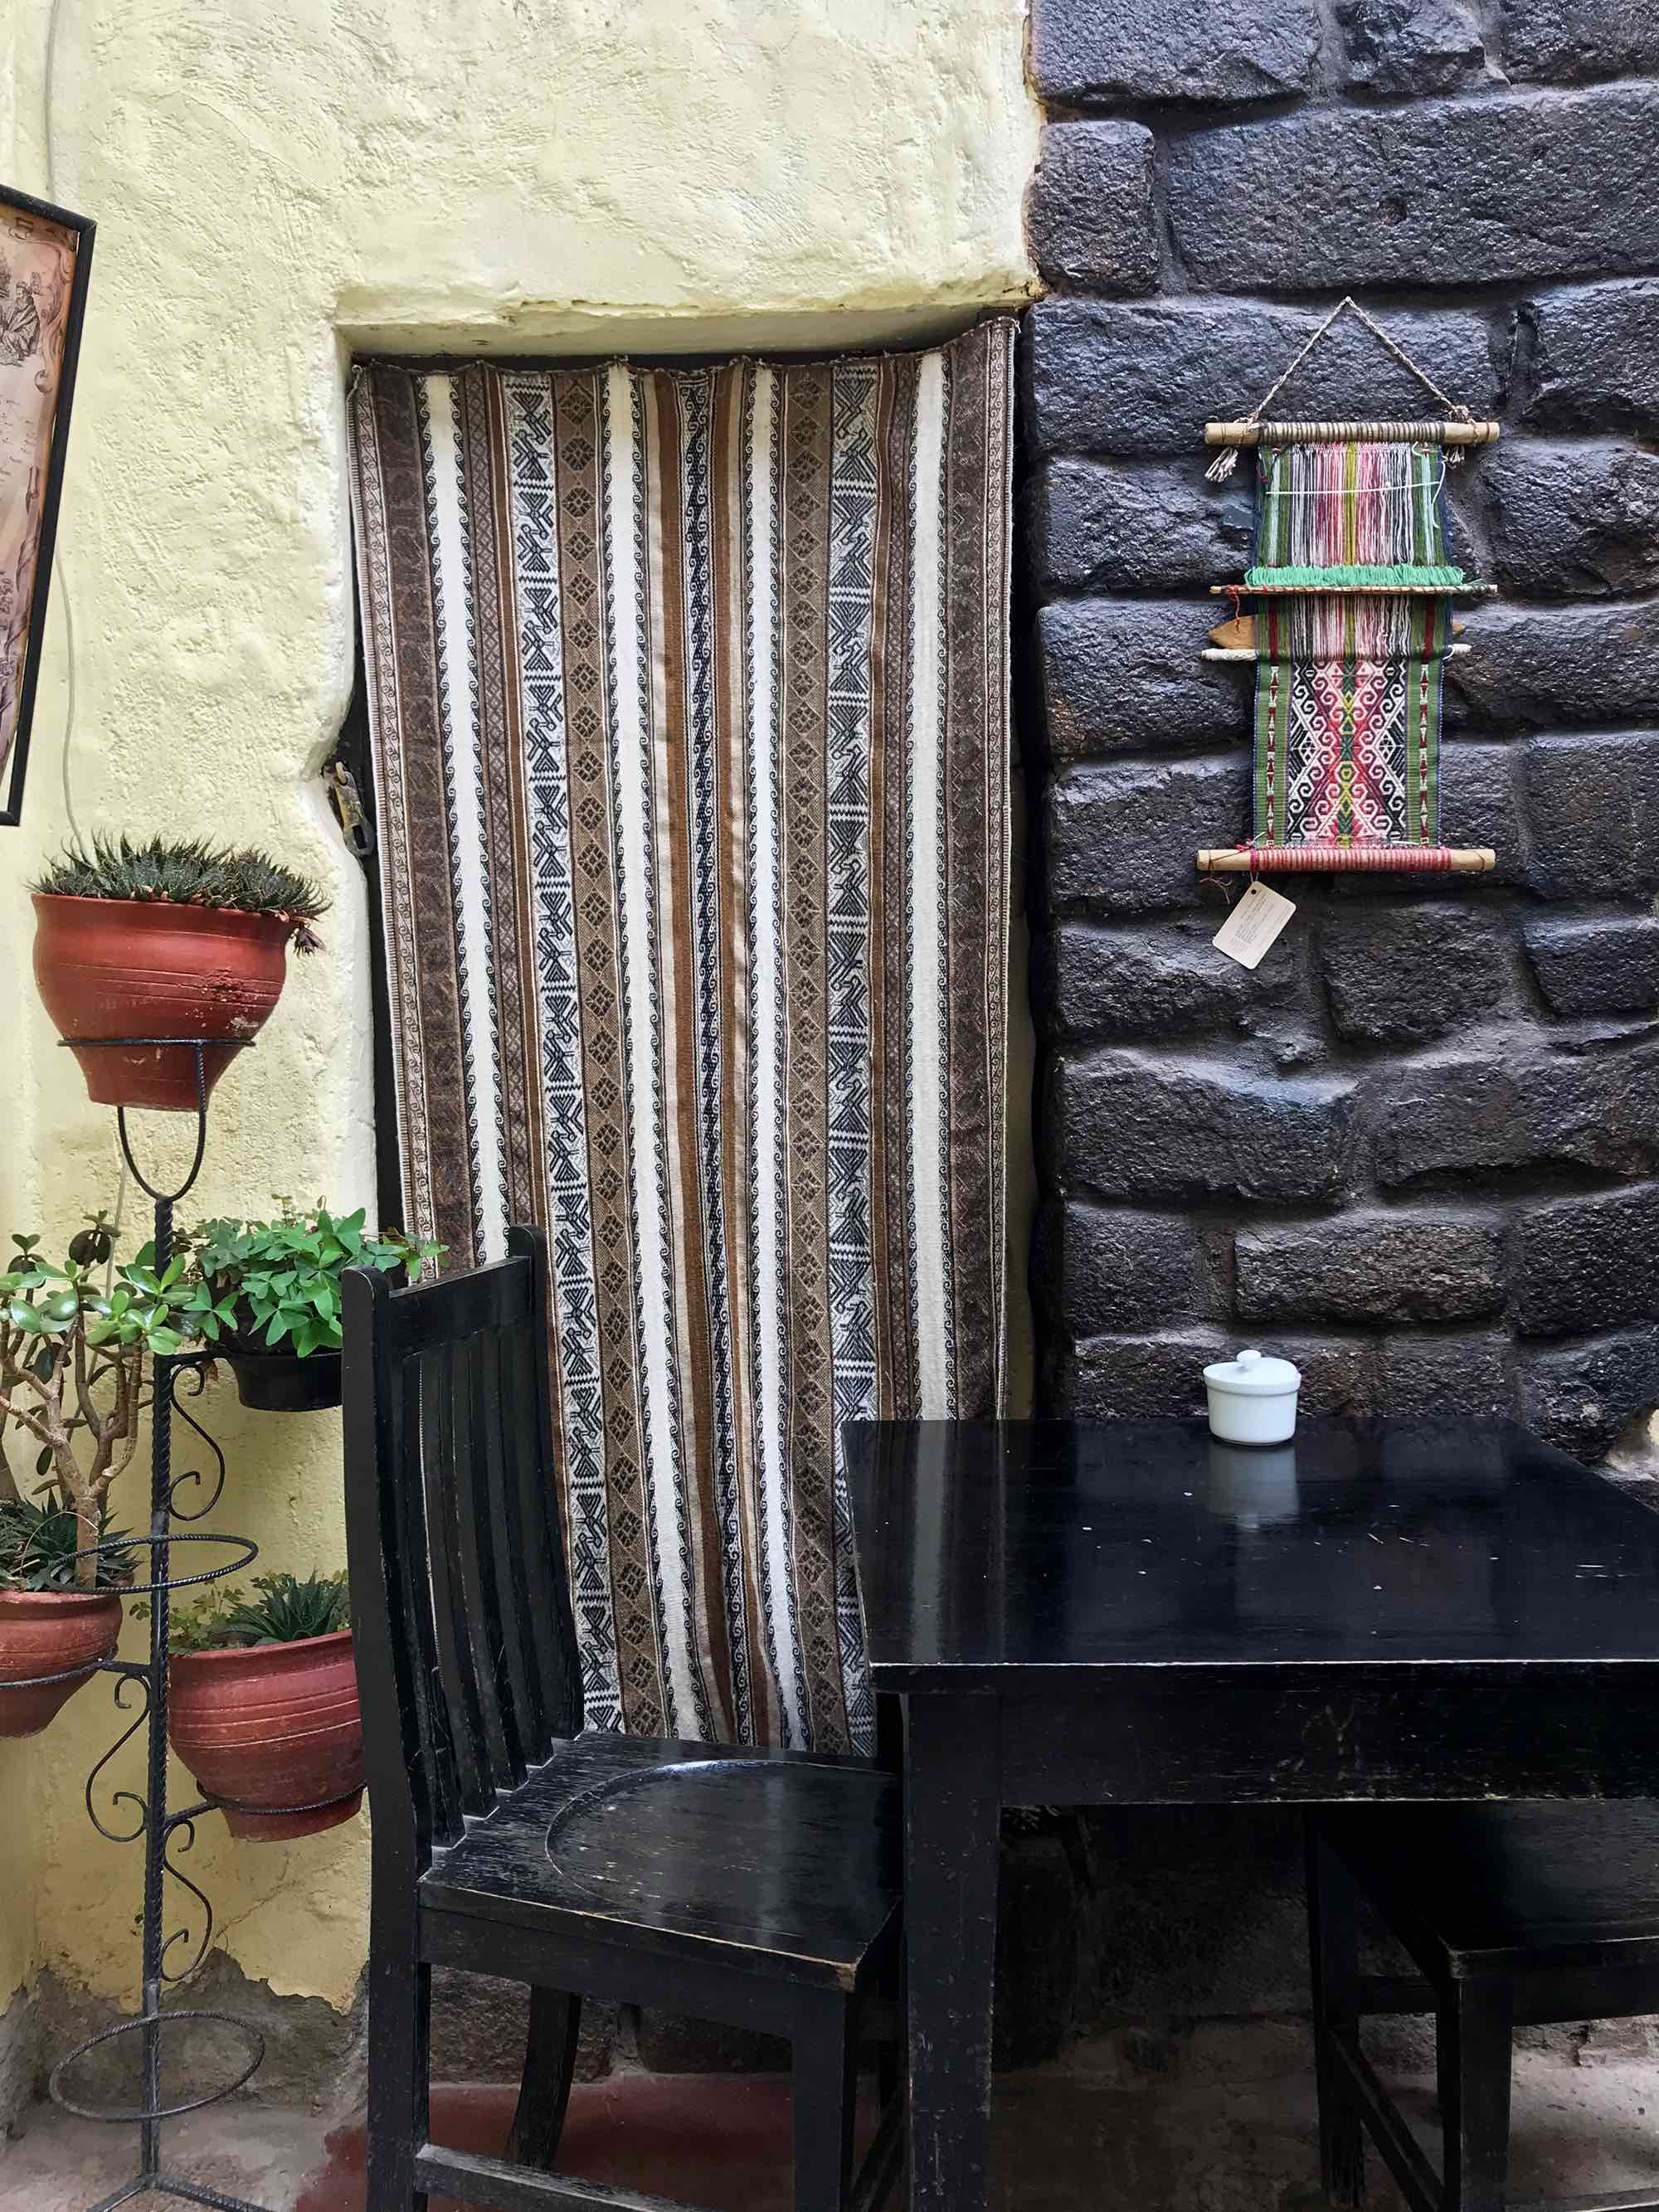 The Meeting Point cafe in Cusco Peru